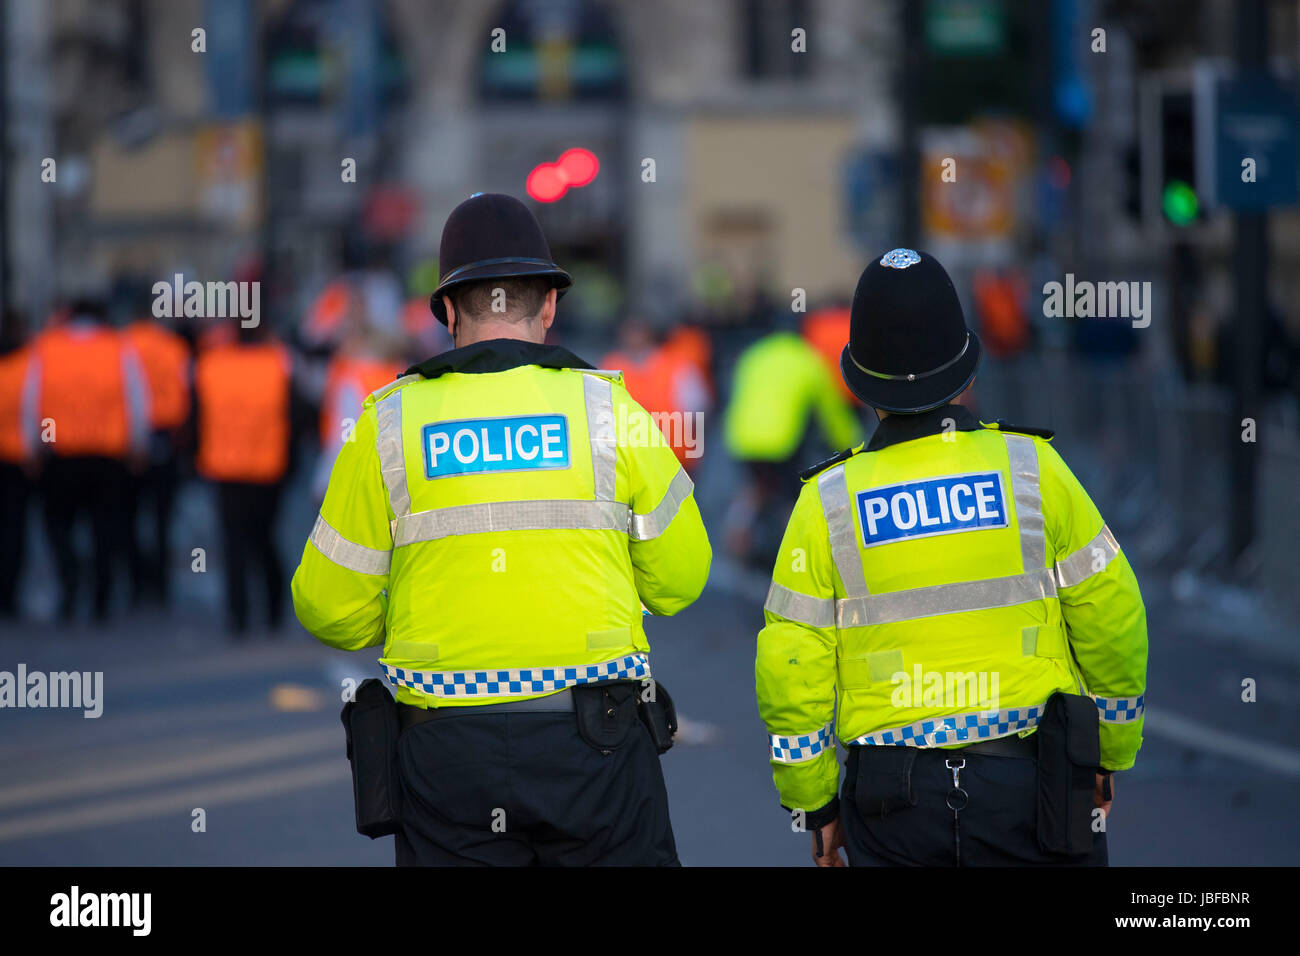 Police officers on patrol in central Cardiff during the Champions League final in Cardiff, Wales, UK. - Stock Image